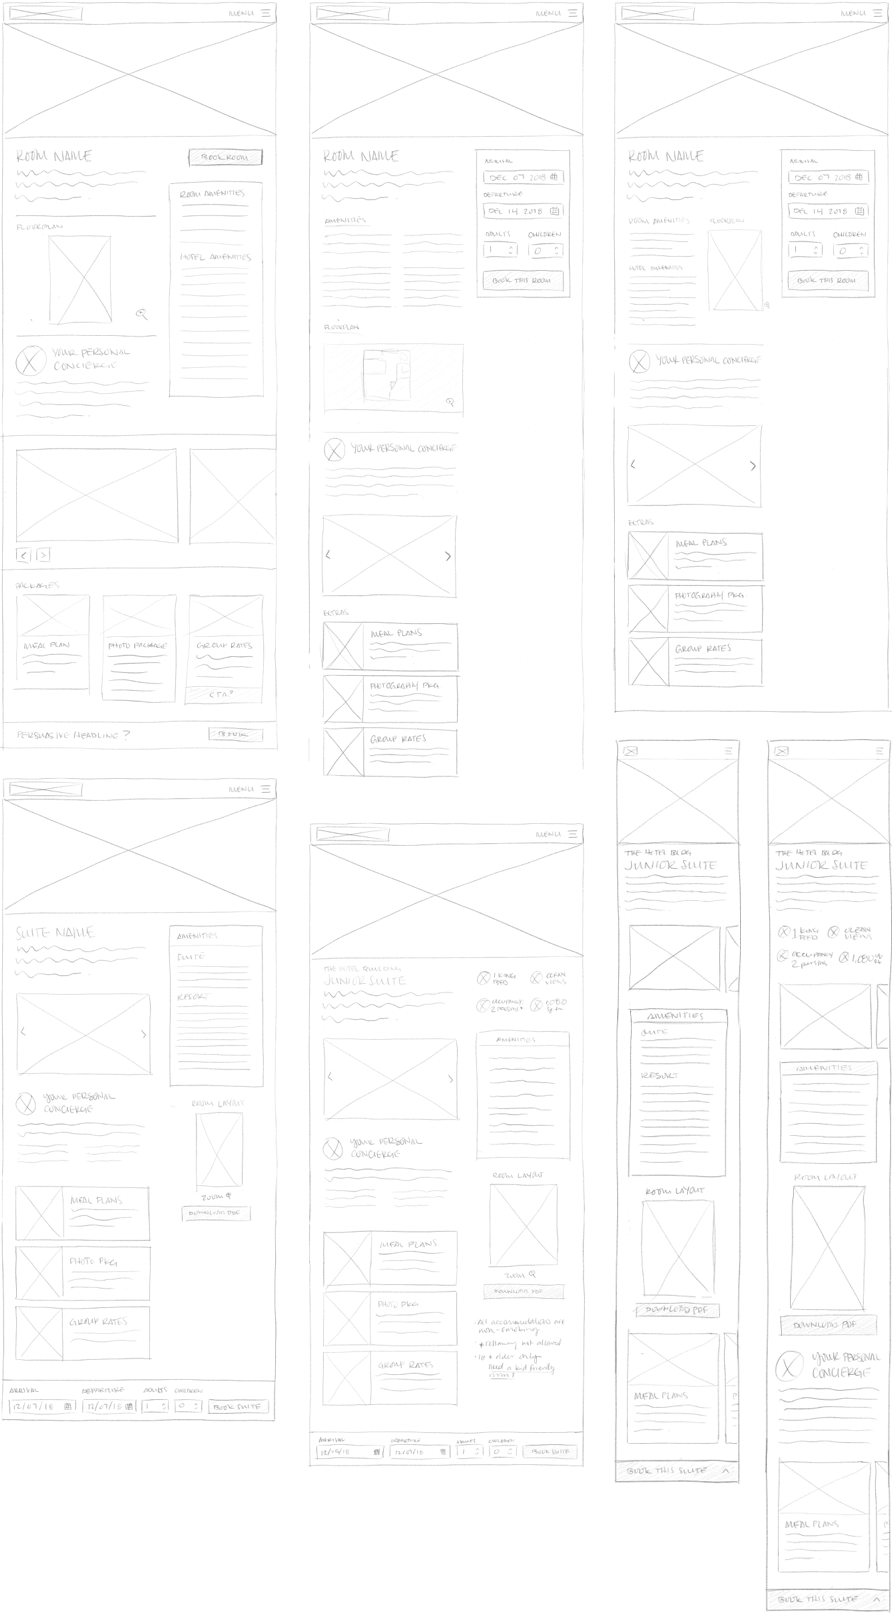 Multiple iterations of a room page layout, as pencil sketches..